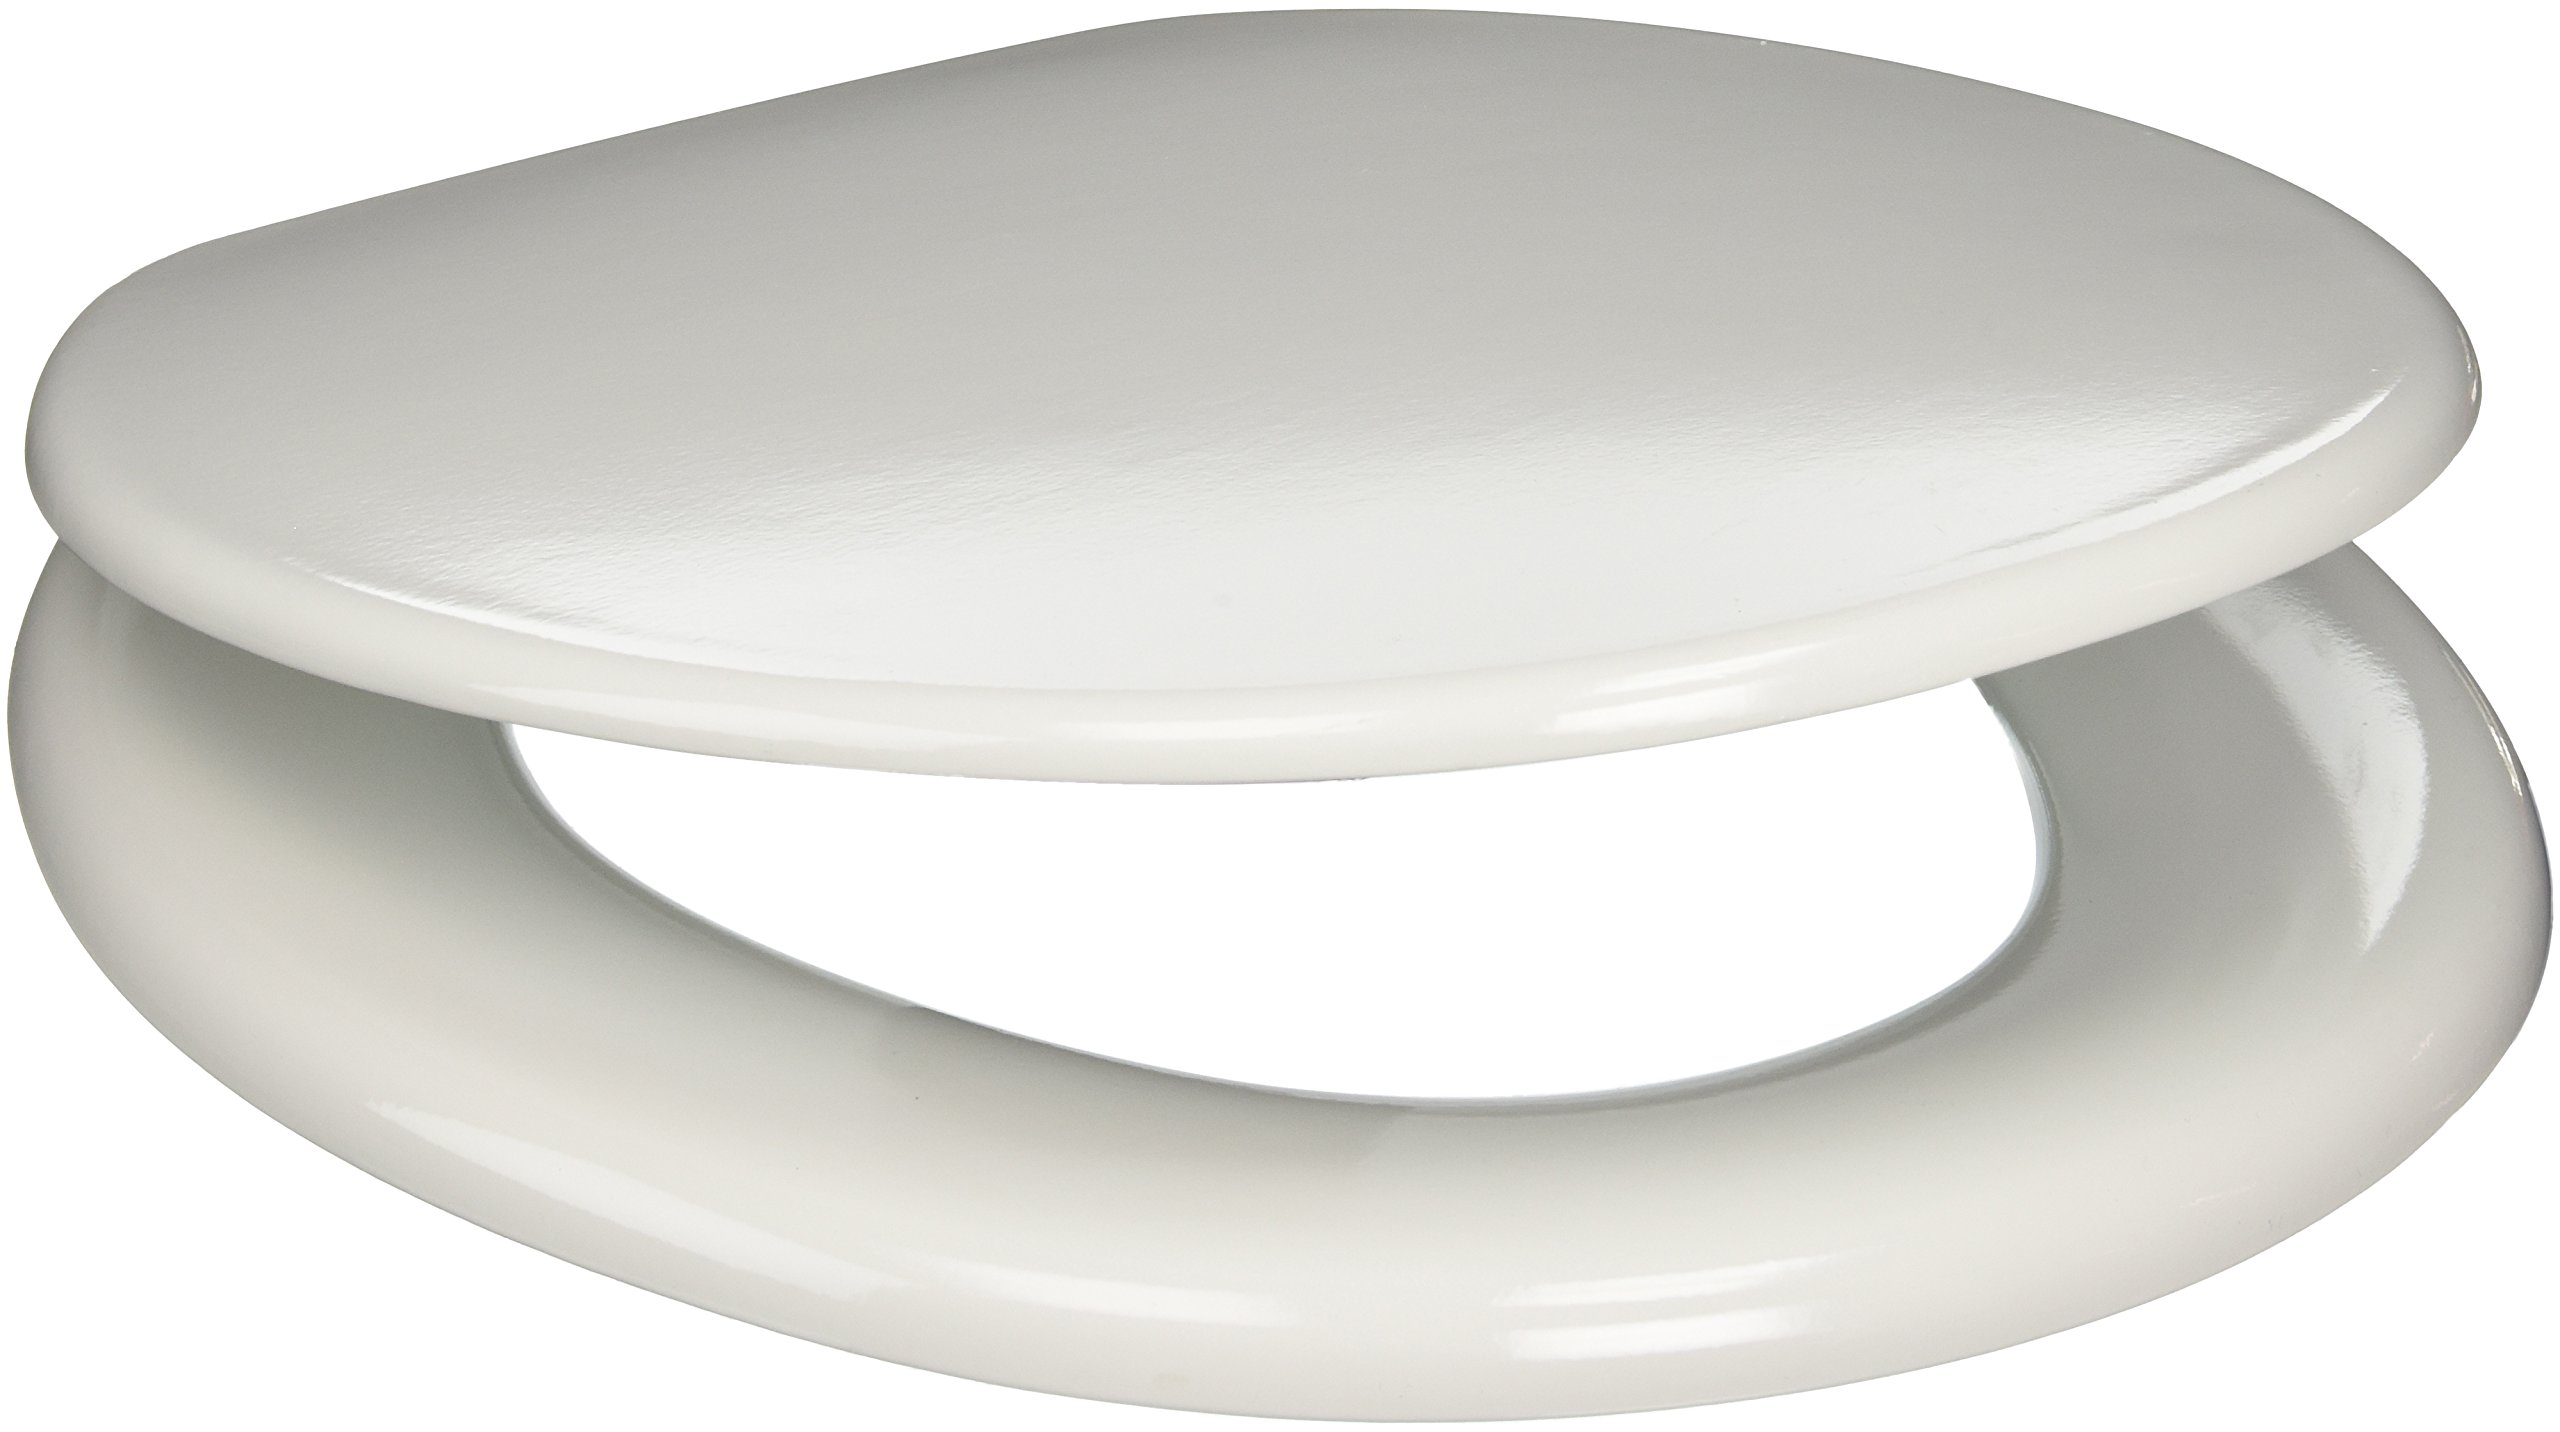 PlumbTech 103-00 Builder Grade Round Toilet Seat with Adjustable Hinge, White